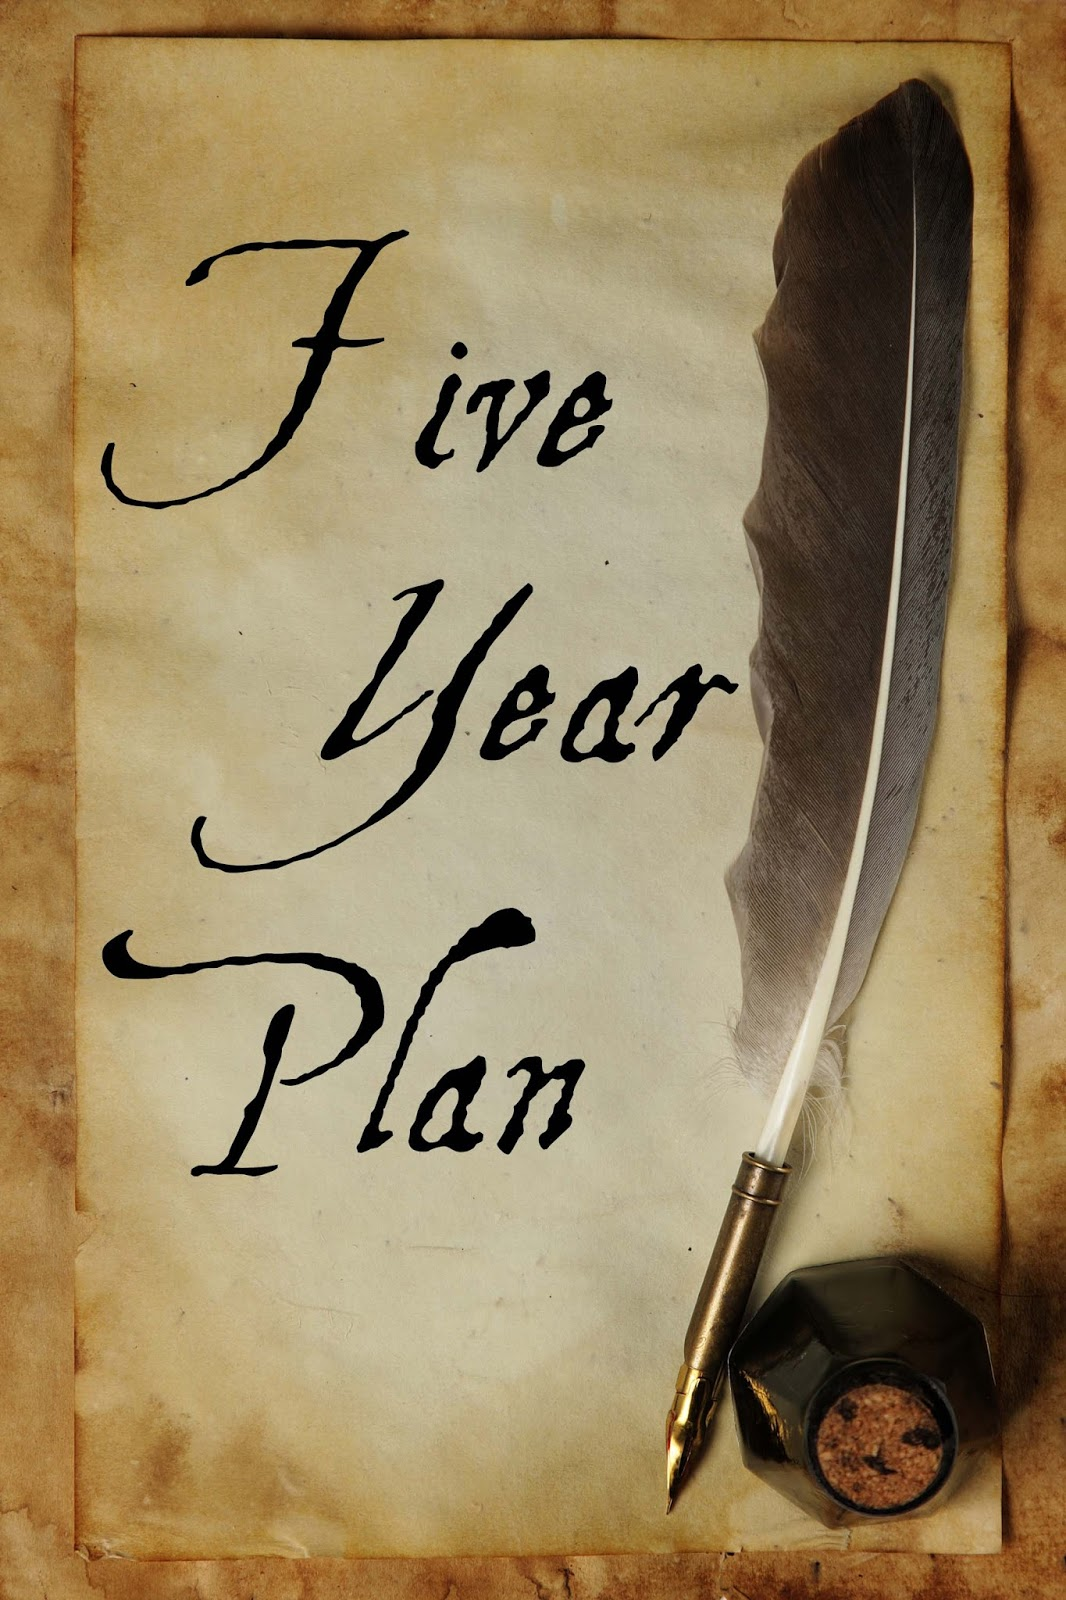 Give Five Year Plan